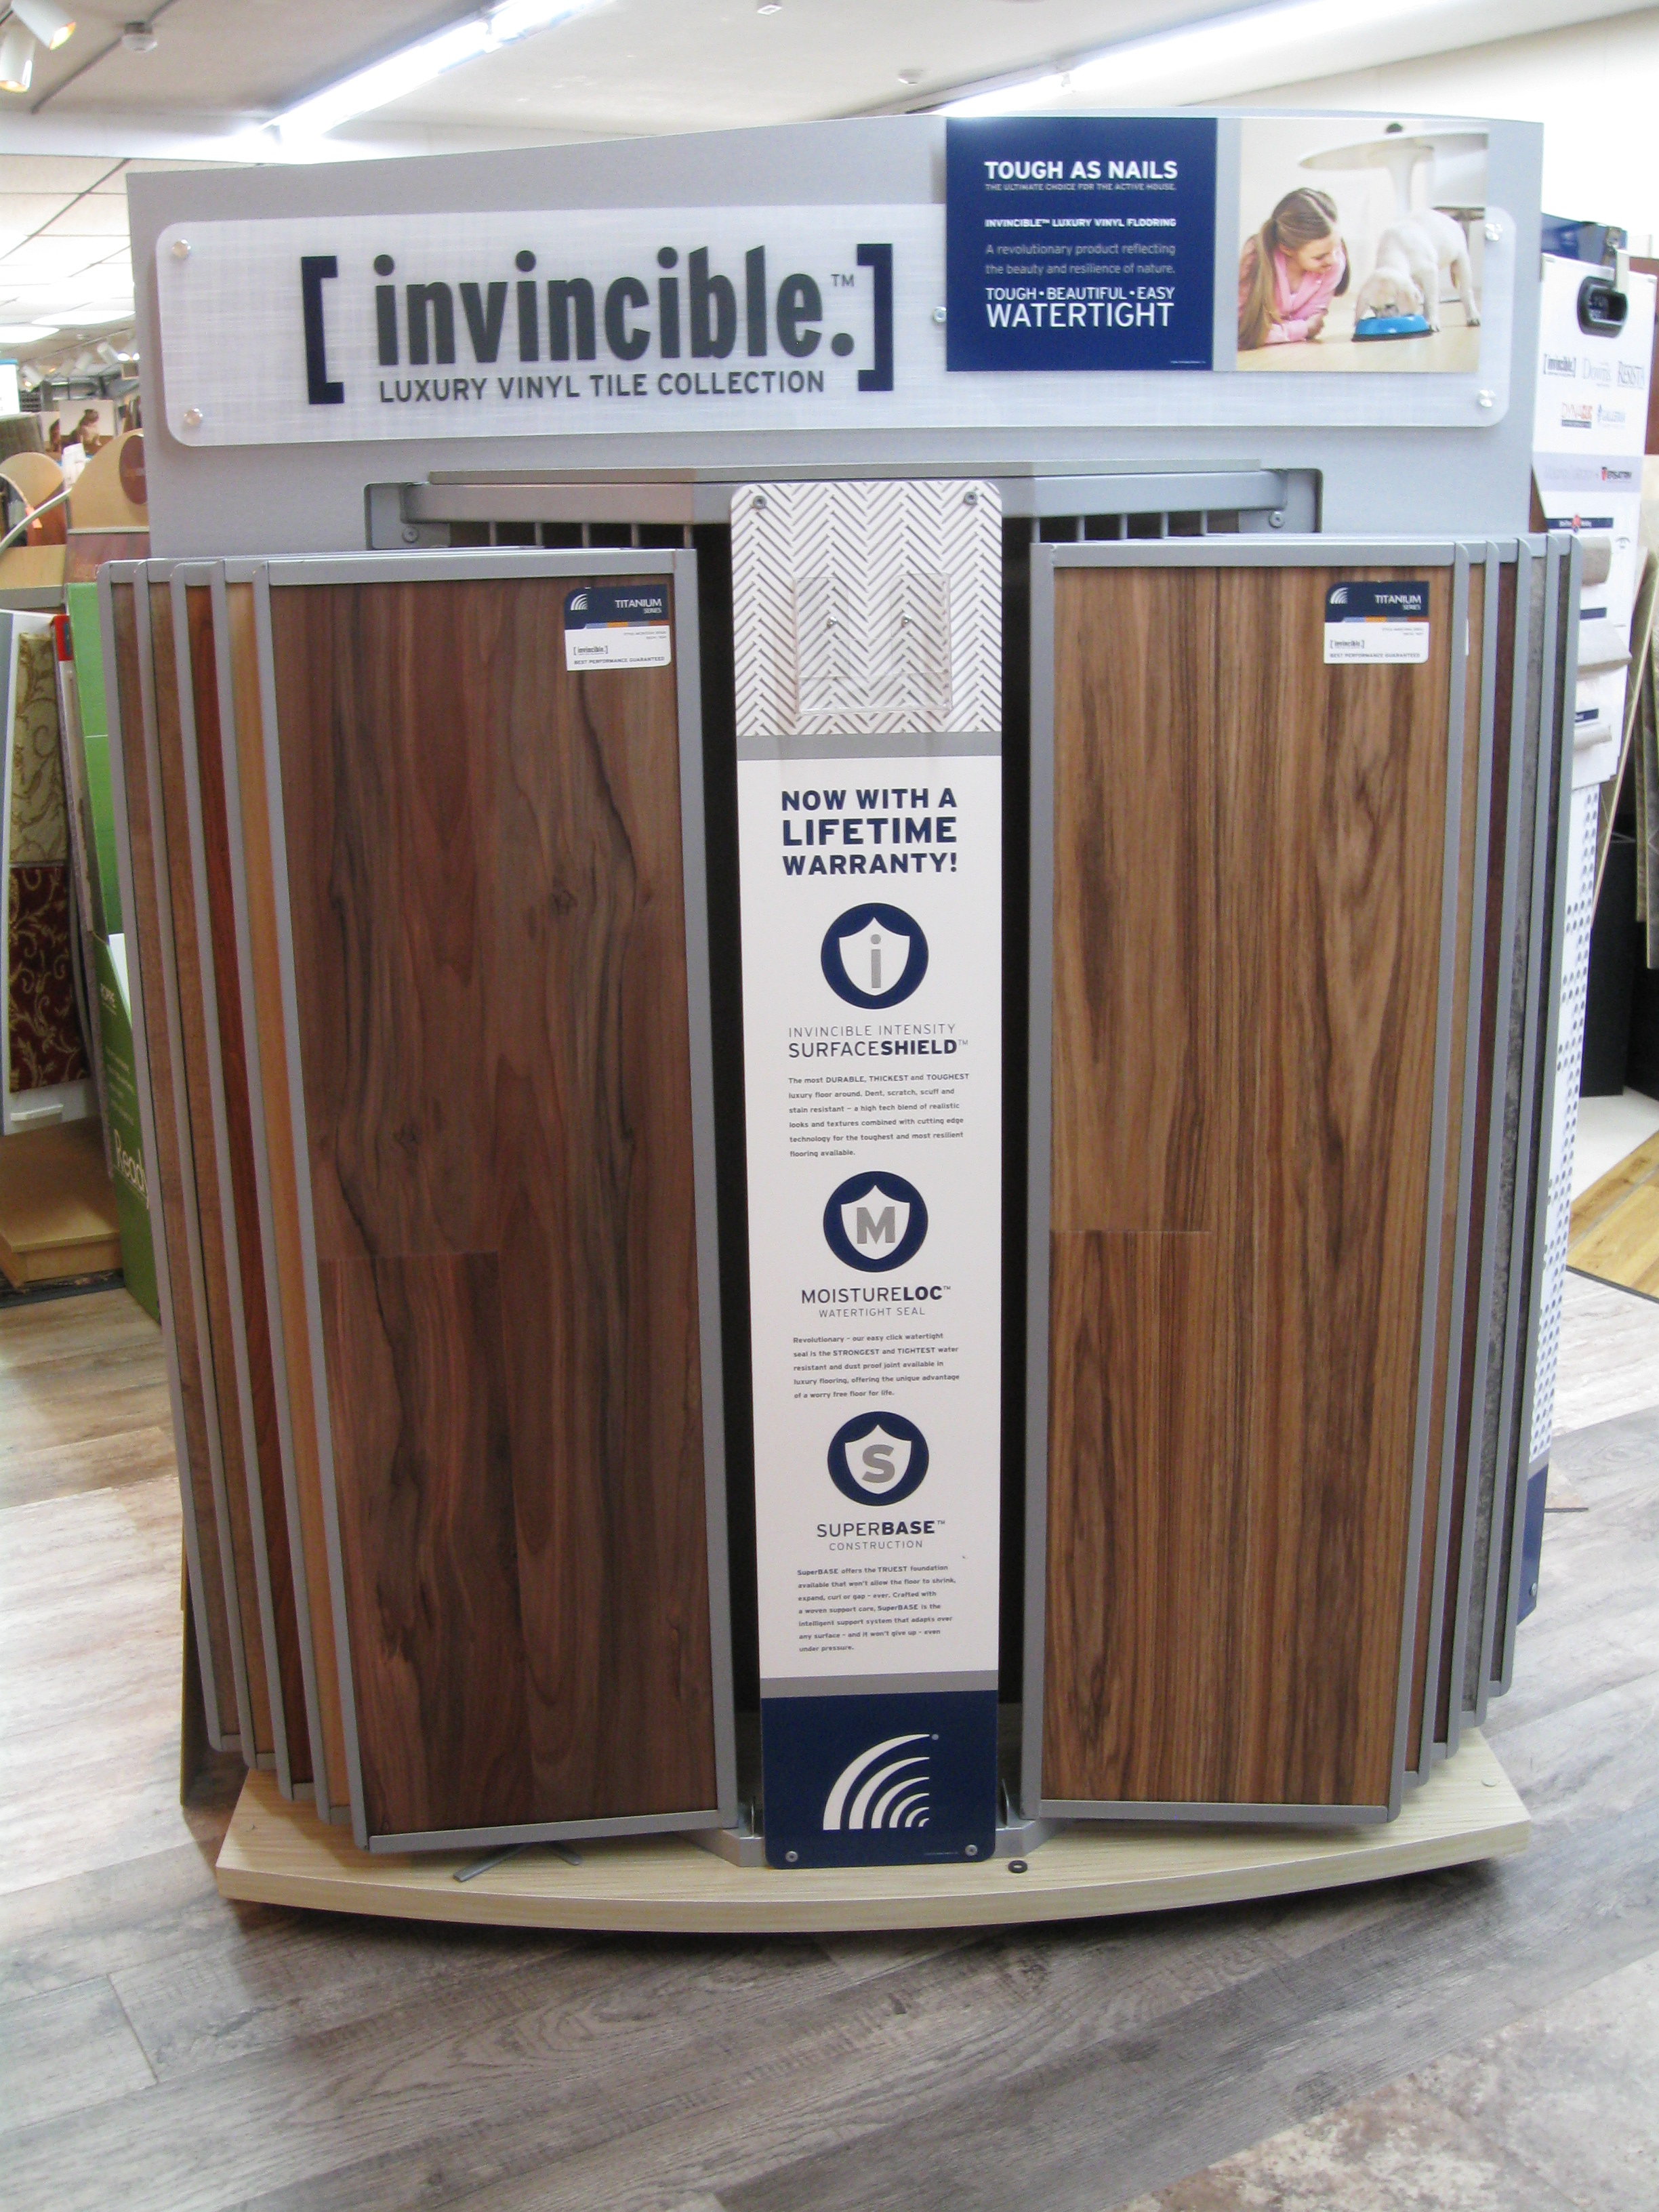 Invinciblelvt Display Introducing Invicible Luxury Vinyl Tile